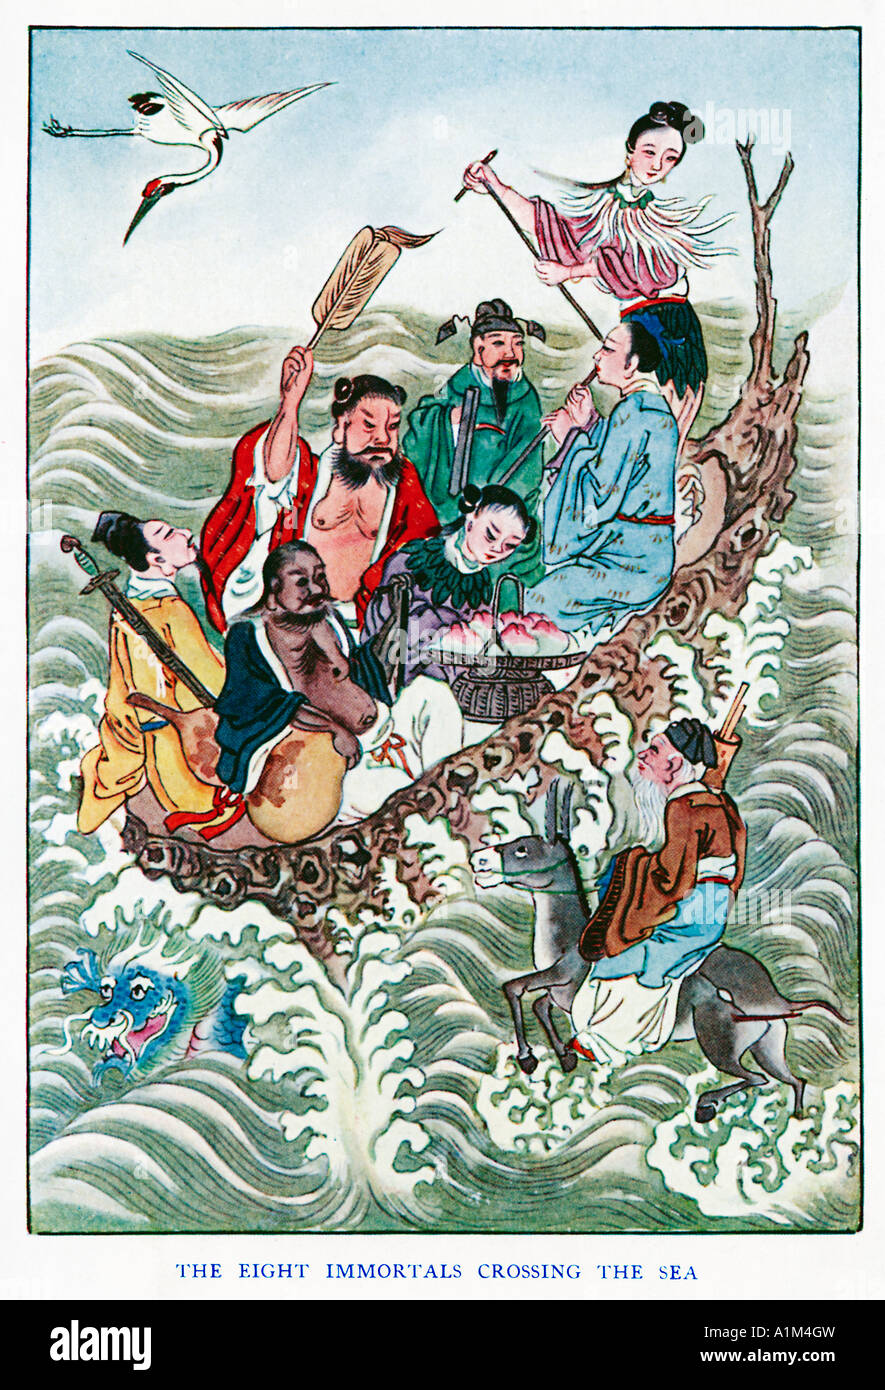 The Eight Immortals Crossing The Sea the Pa Hsien kuo hai the Taoist deities 1920s illustration by a Chinese artist - Stock Image